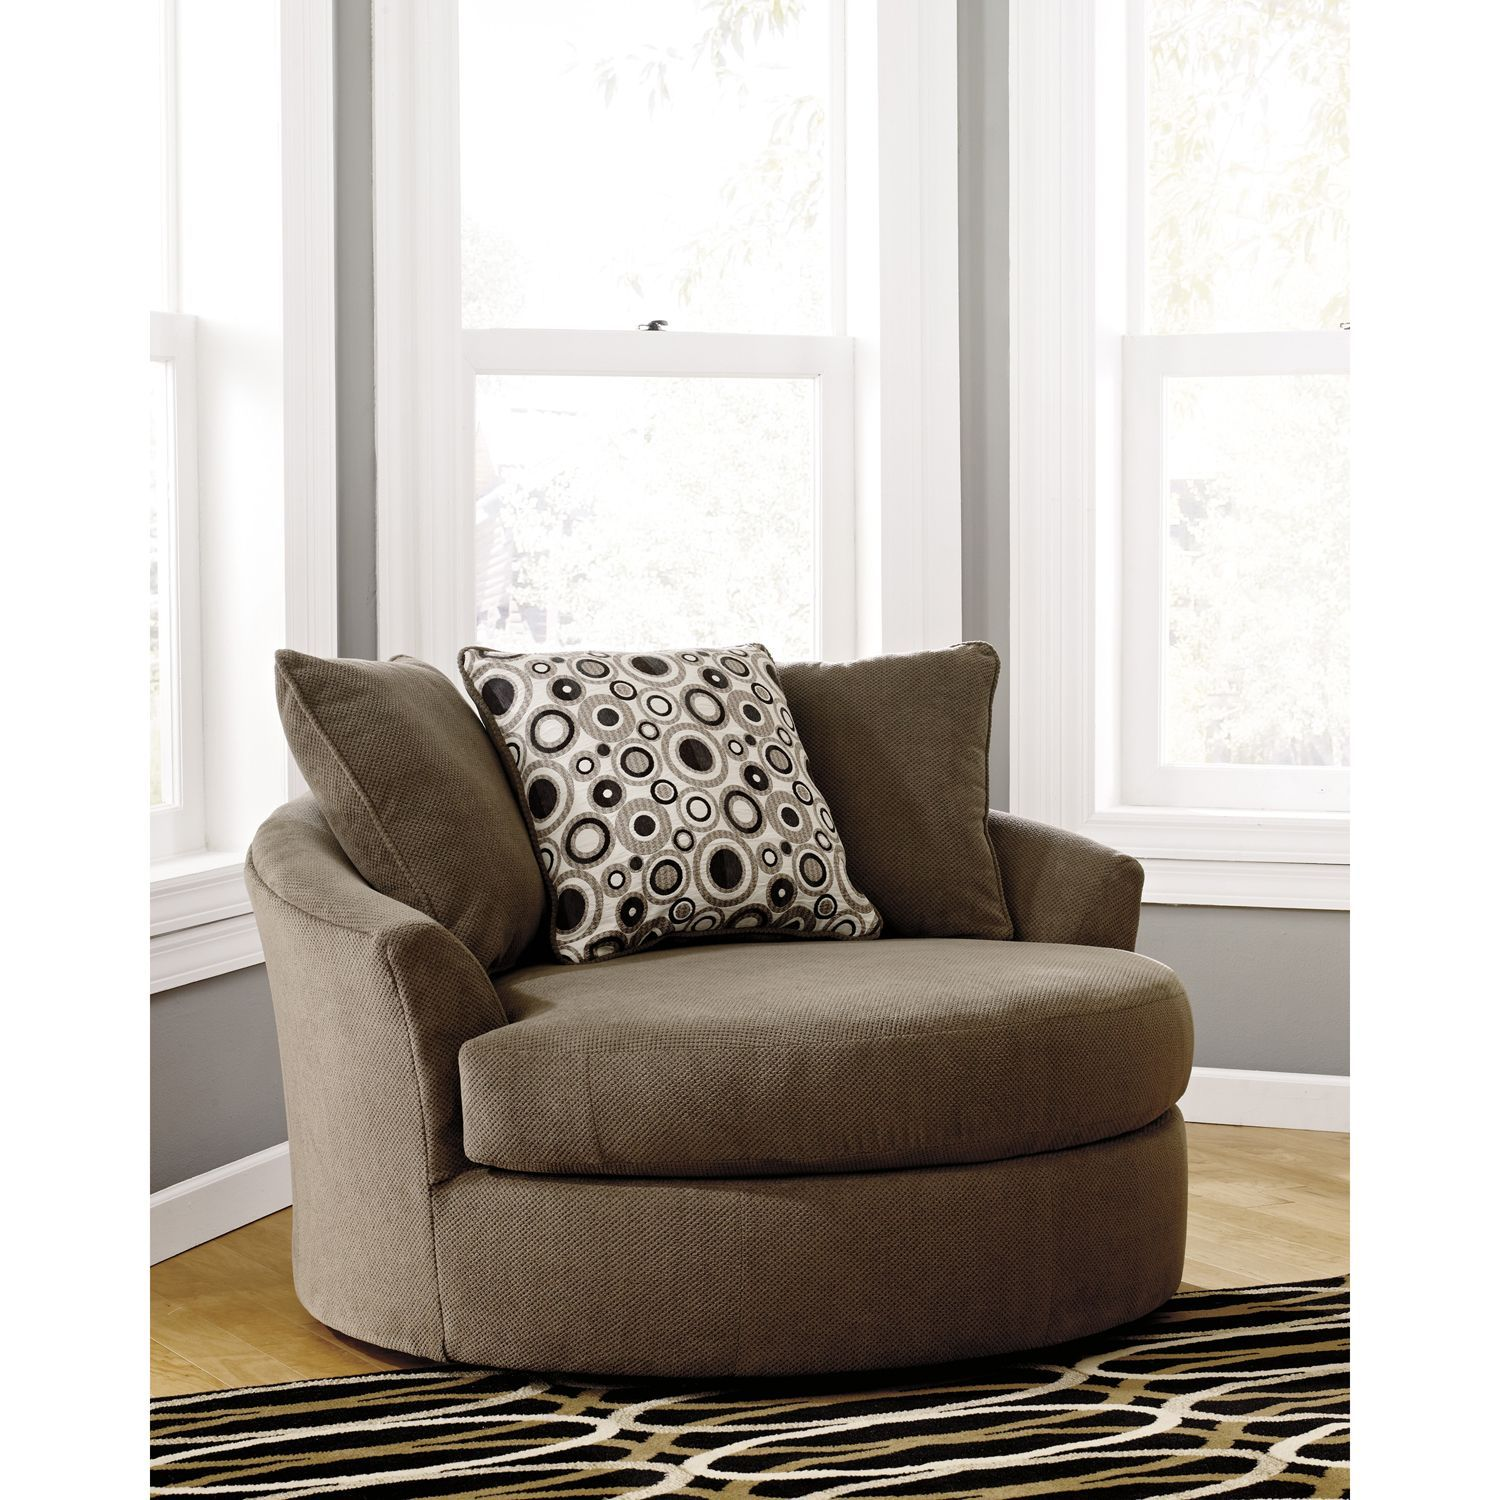 Accent Chairs Near Fireplace